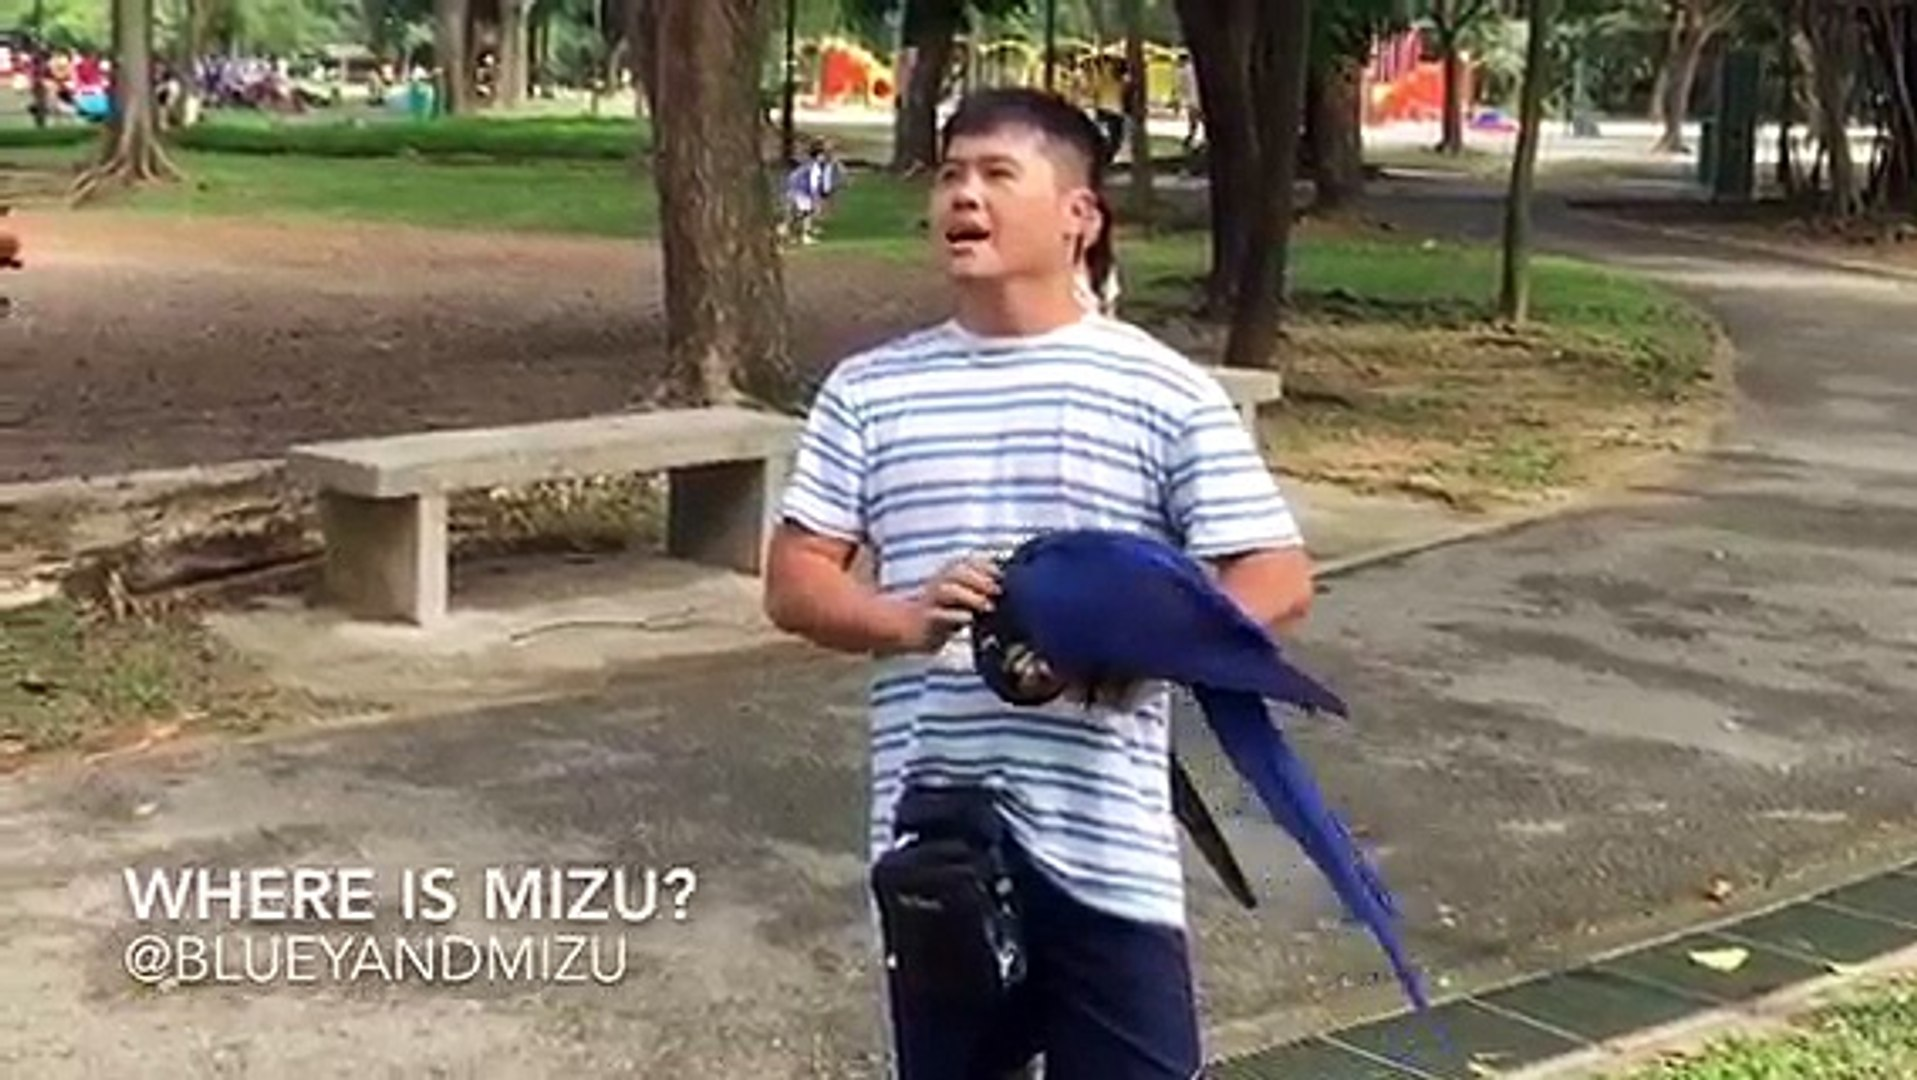 Bluey & Mizu: most playful and intelligent parrots play hide and seek